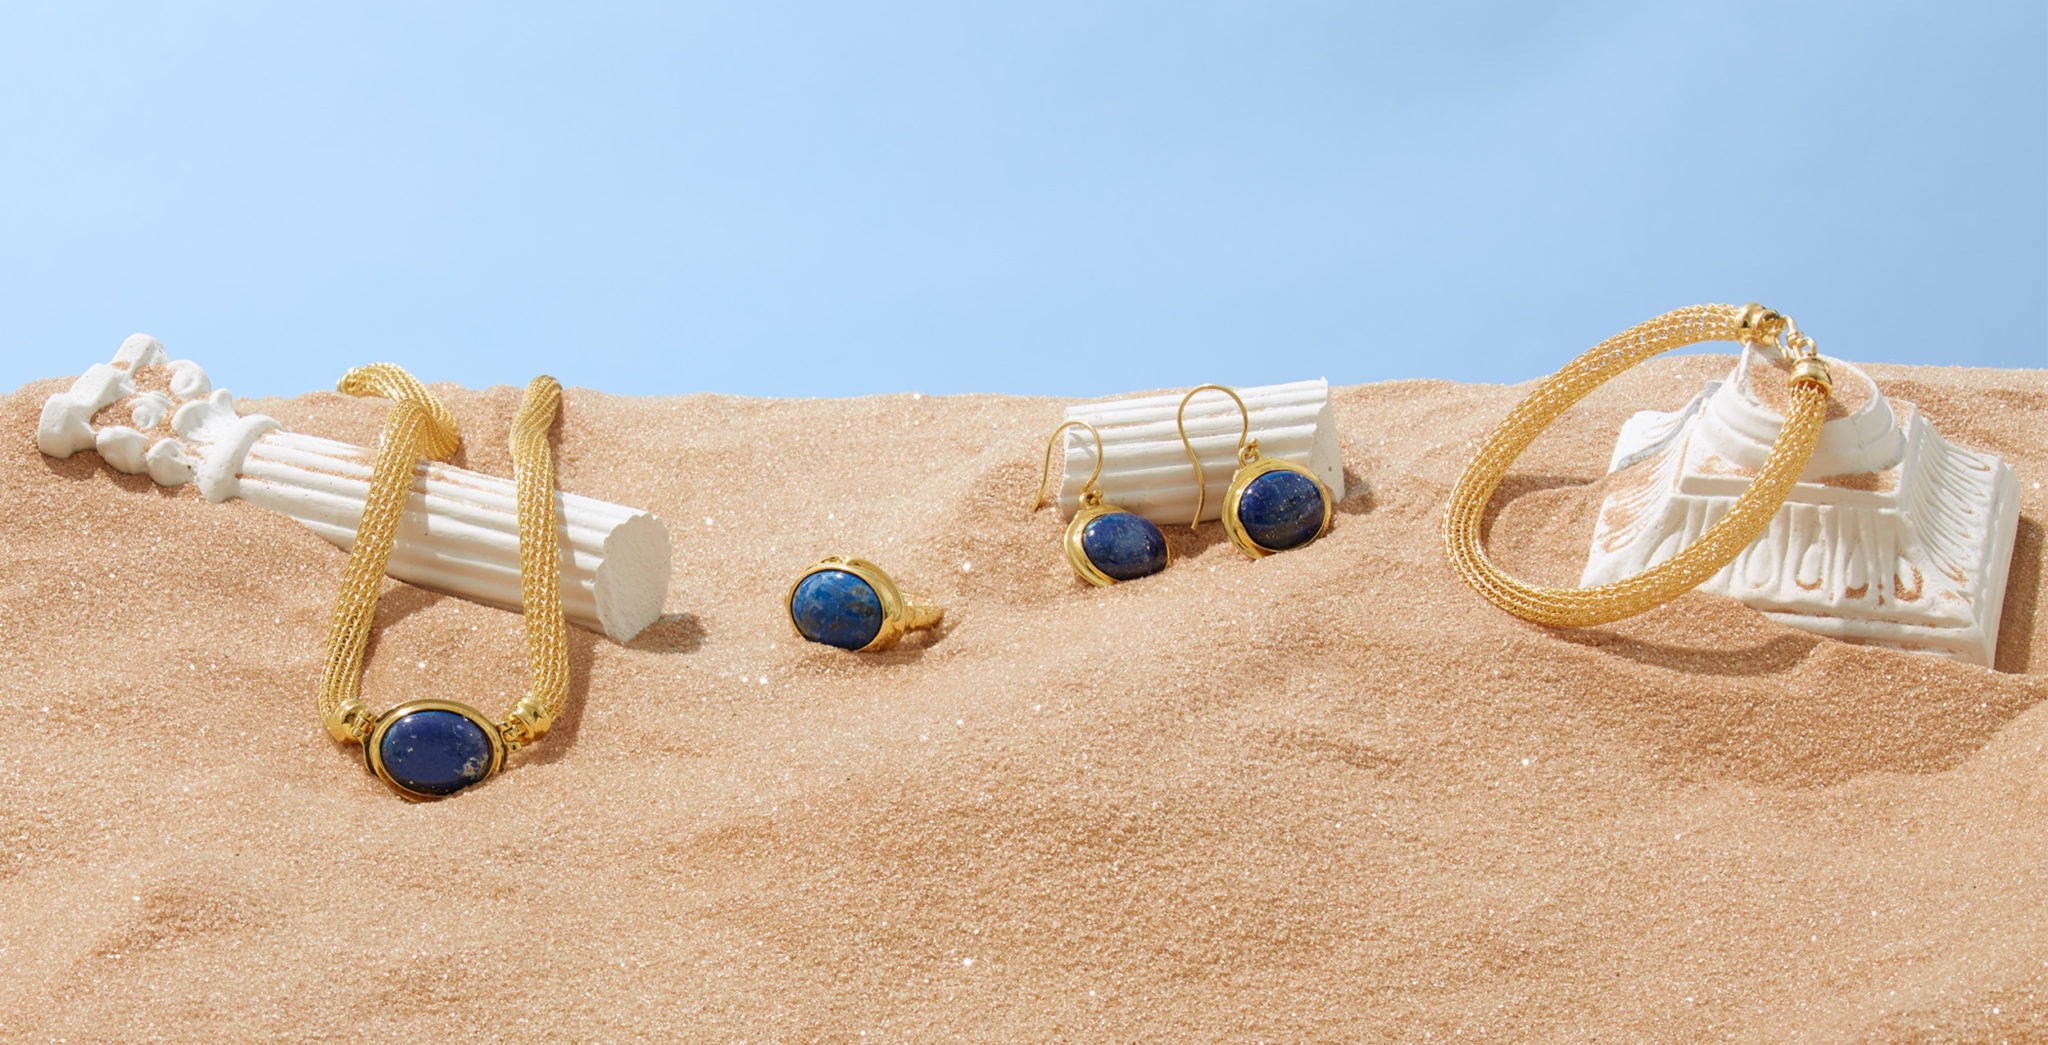 marketing still life photograph of gold and lapis cabochon jewelry draped on ruins of marble columns in the desert